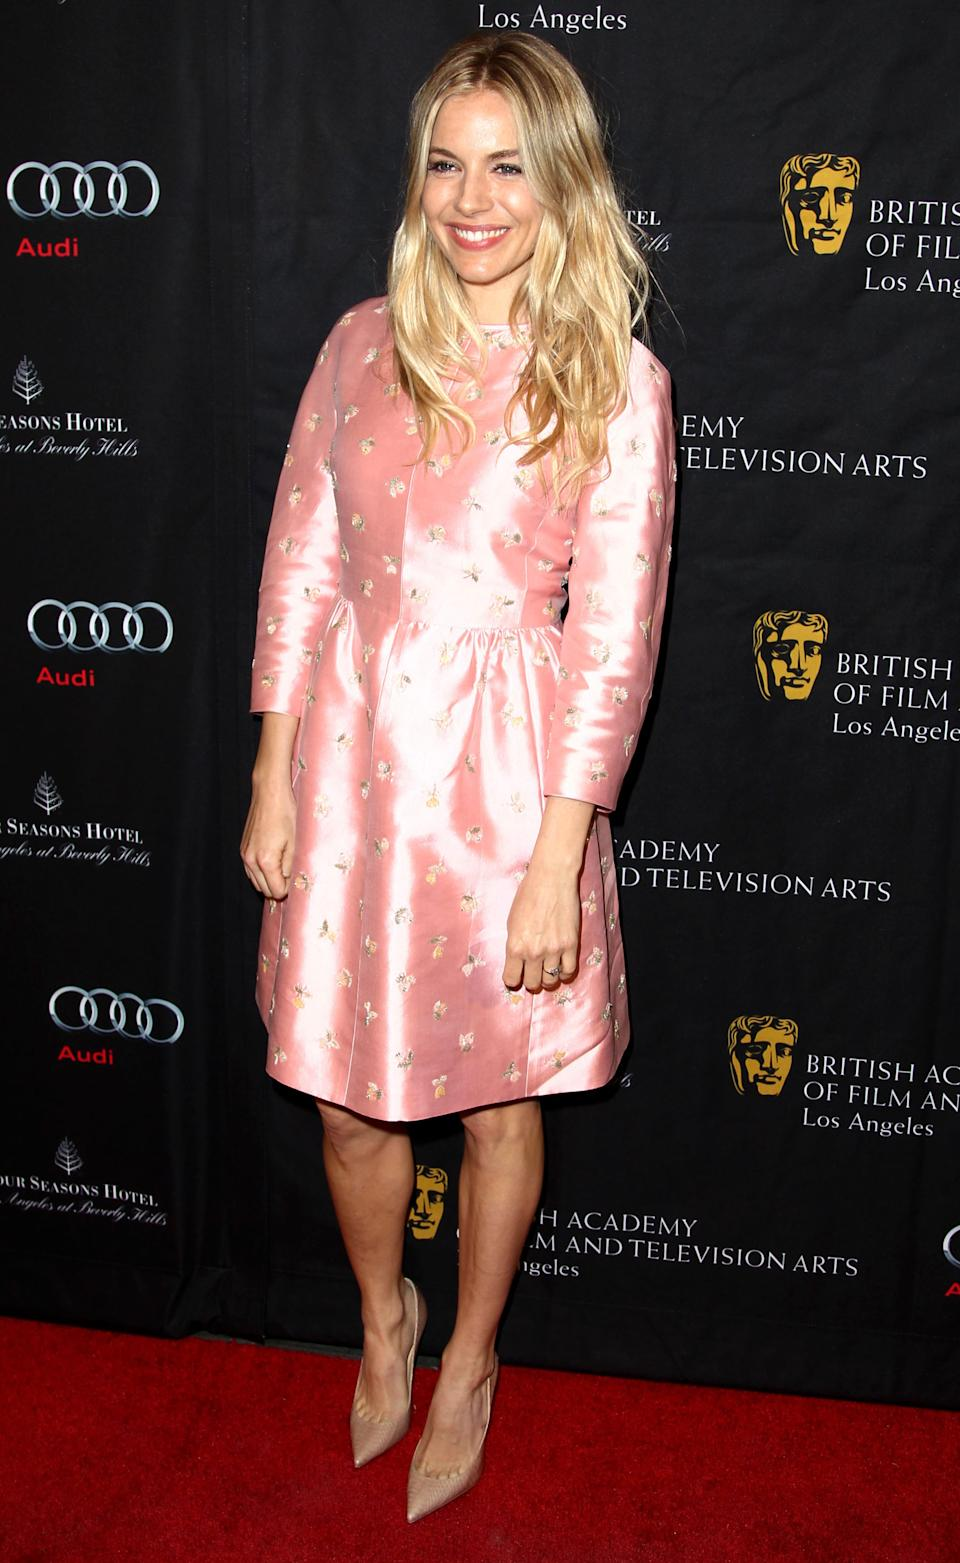 Actress Sienna Miller arrives at the BAFTA Awards Season Tea Party at The Four Seasons Hotel on Saturday, Jan. 12, 2013, in Los Angeles. (Photo by Matt Sayles/Invision/AP)